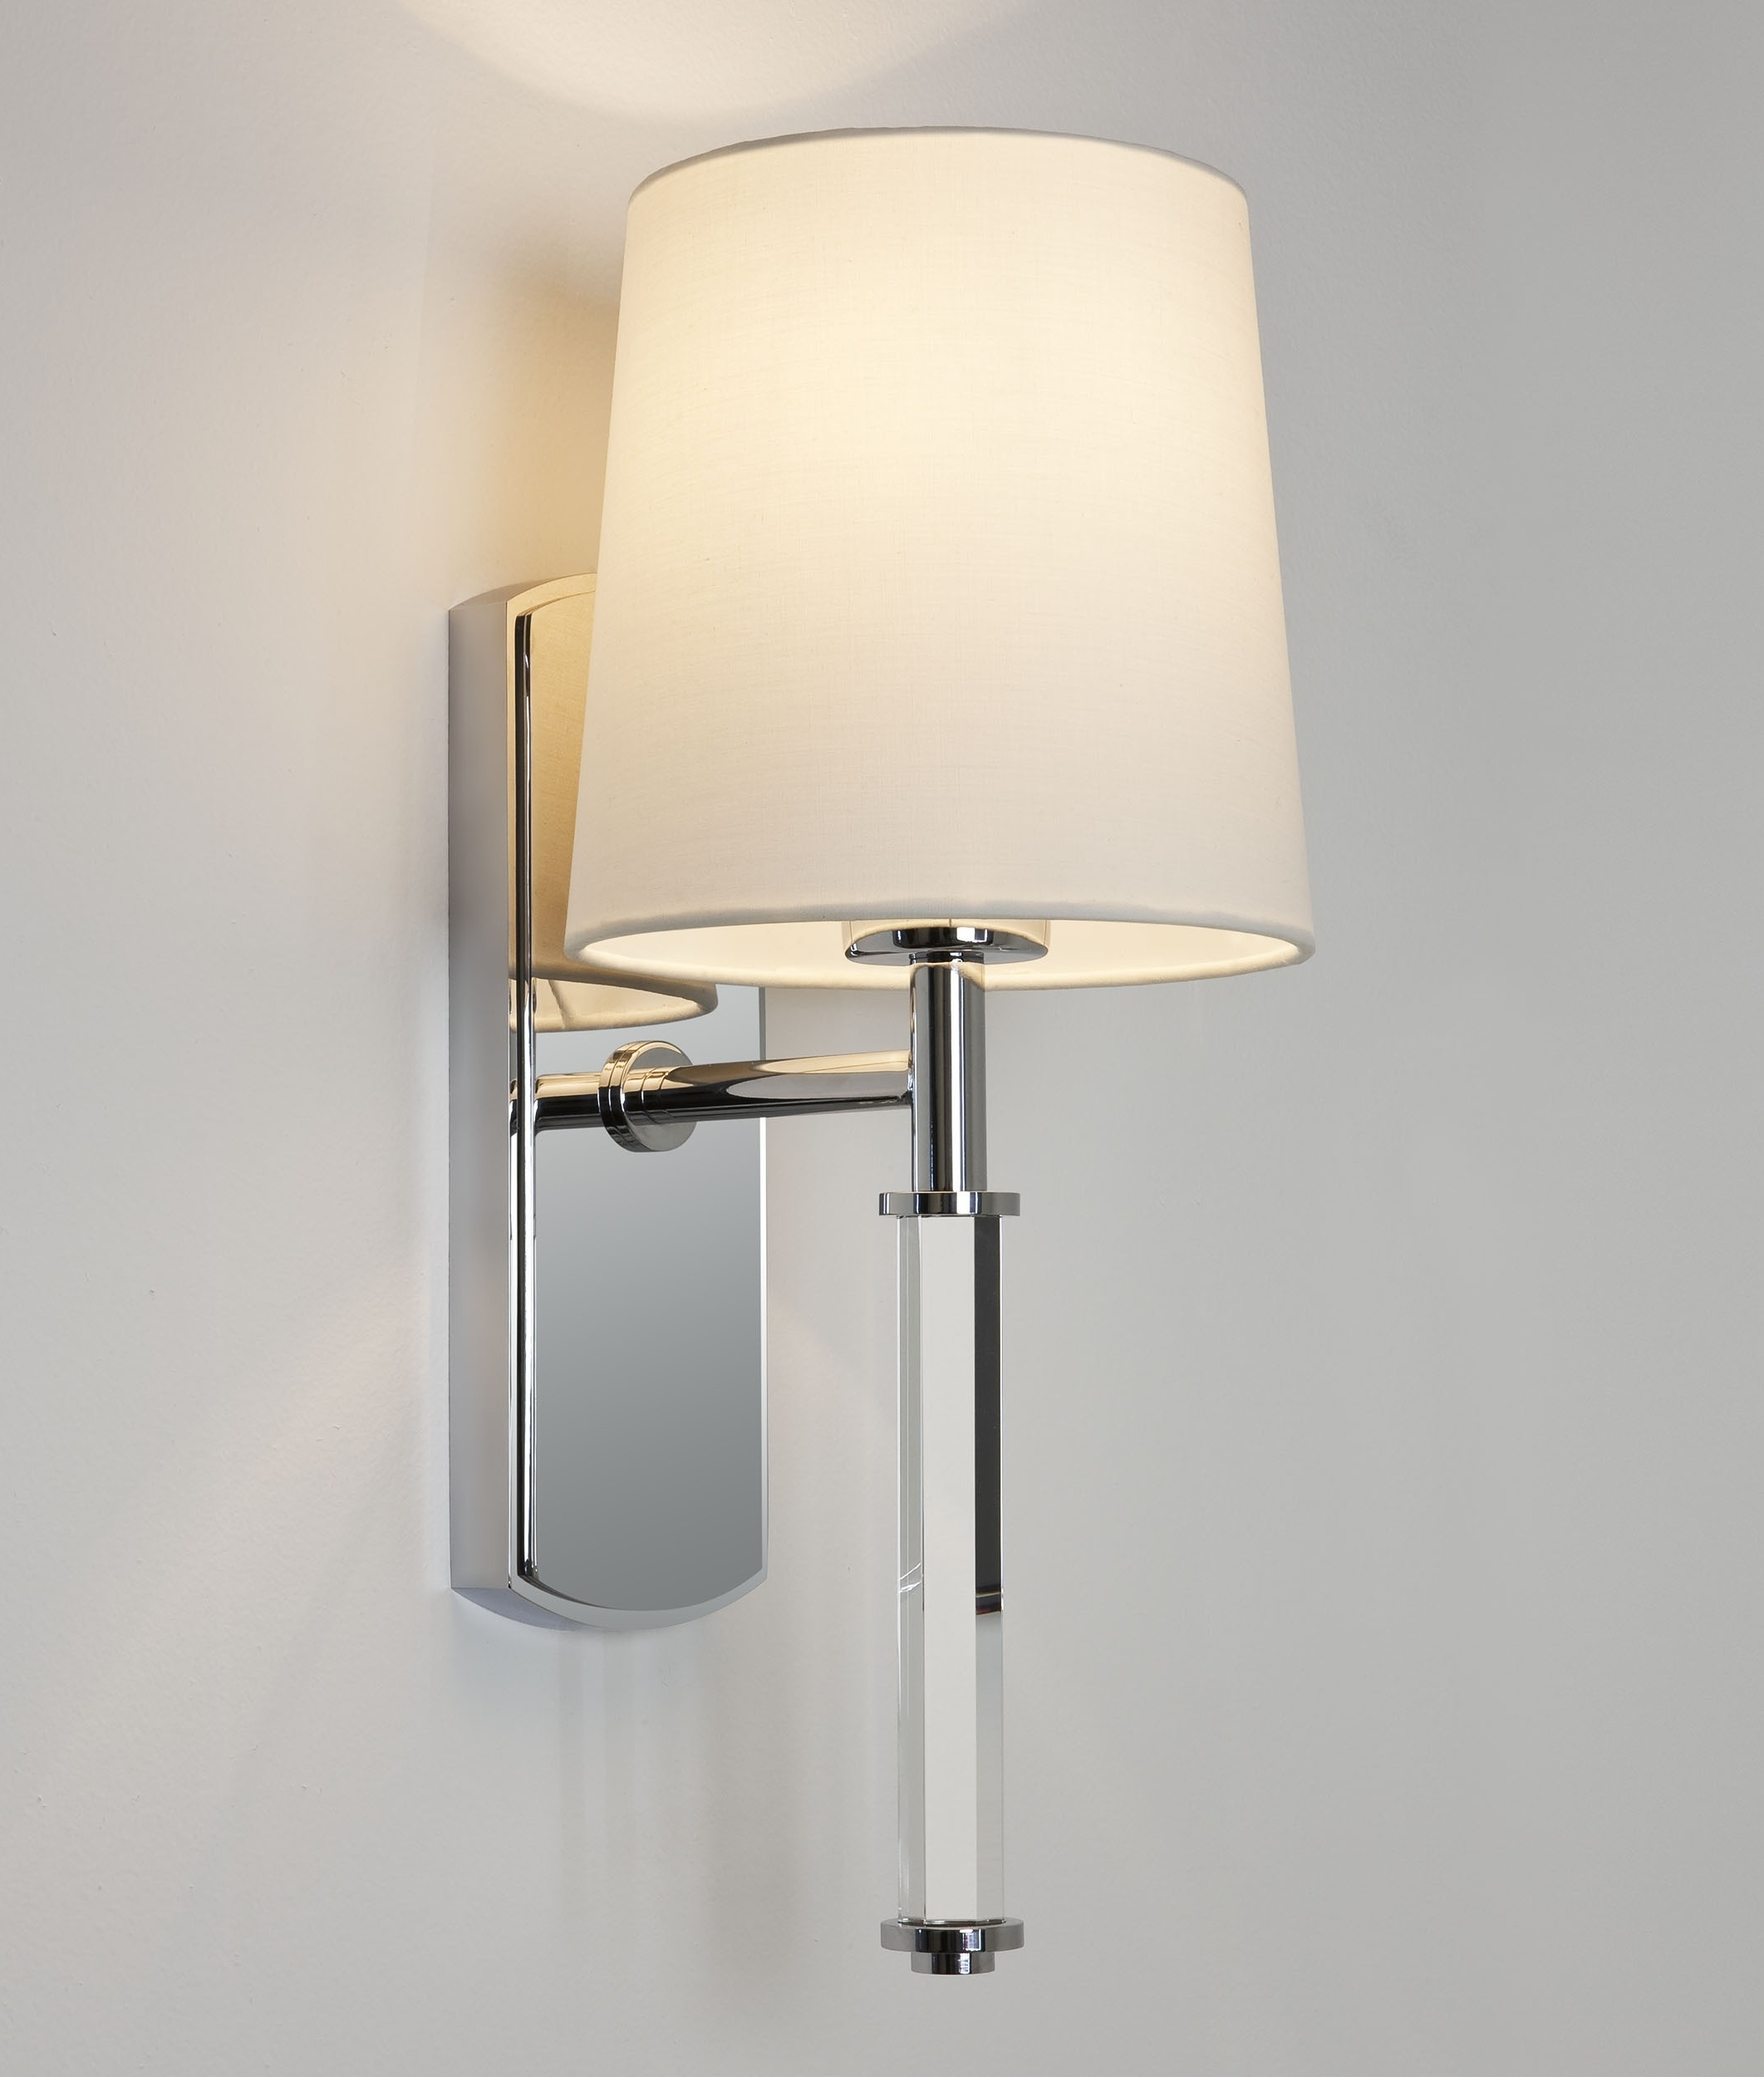 Wall Lights In Chrome : Chrome & Glass Single Arm Wall Light